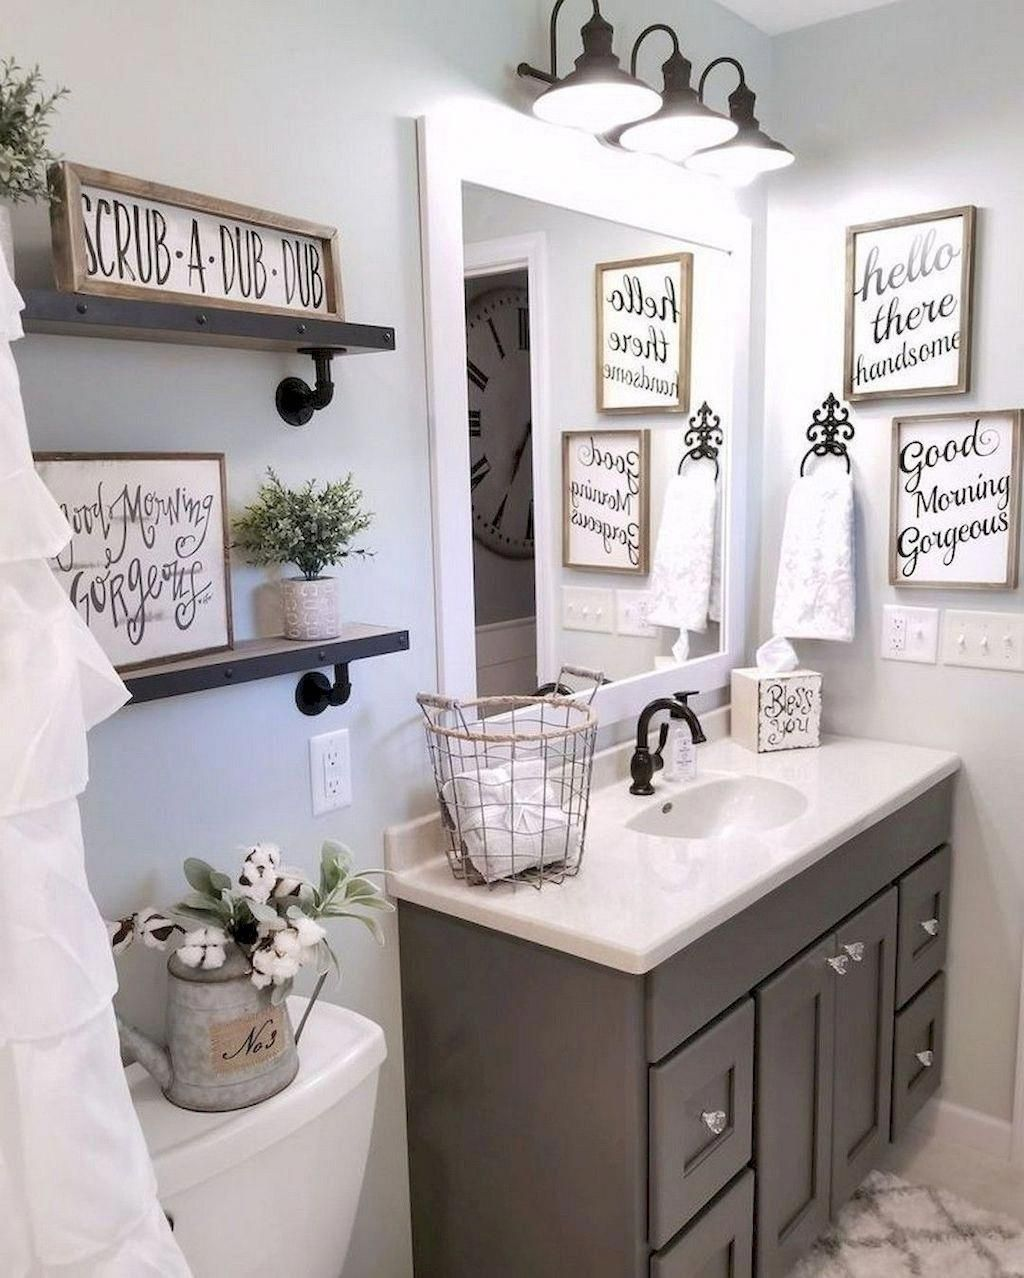 Yellow And Grey Bathroom Decor Small Restroom Decor Red And Gray Bathroom Sets 2 In 2020 Farmhouse Bathroom Decor Farmhouse Master Bathroom Bathroom Remodel Master